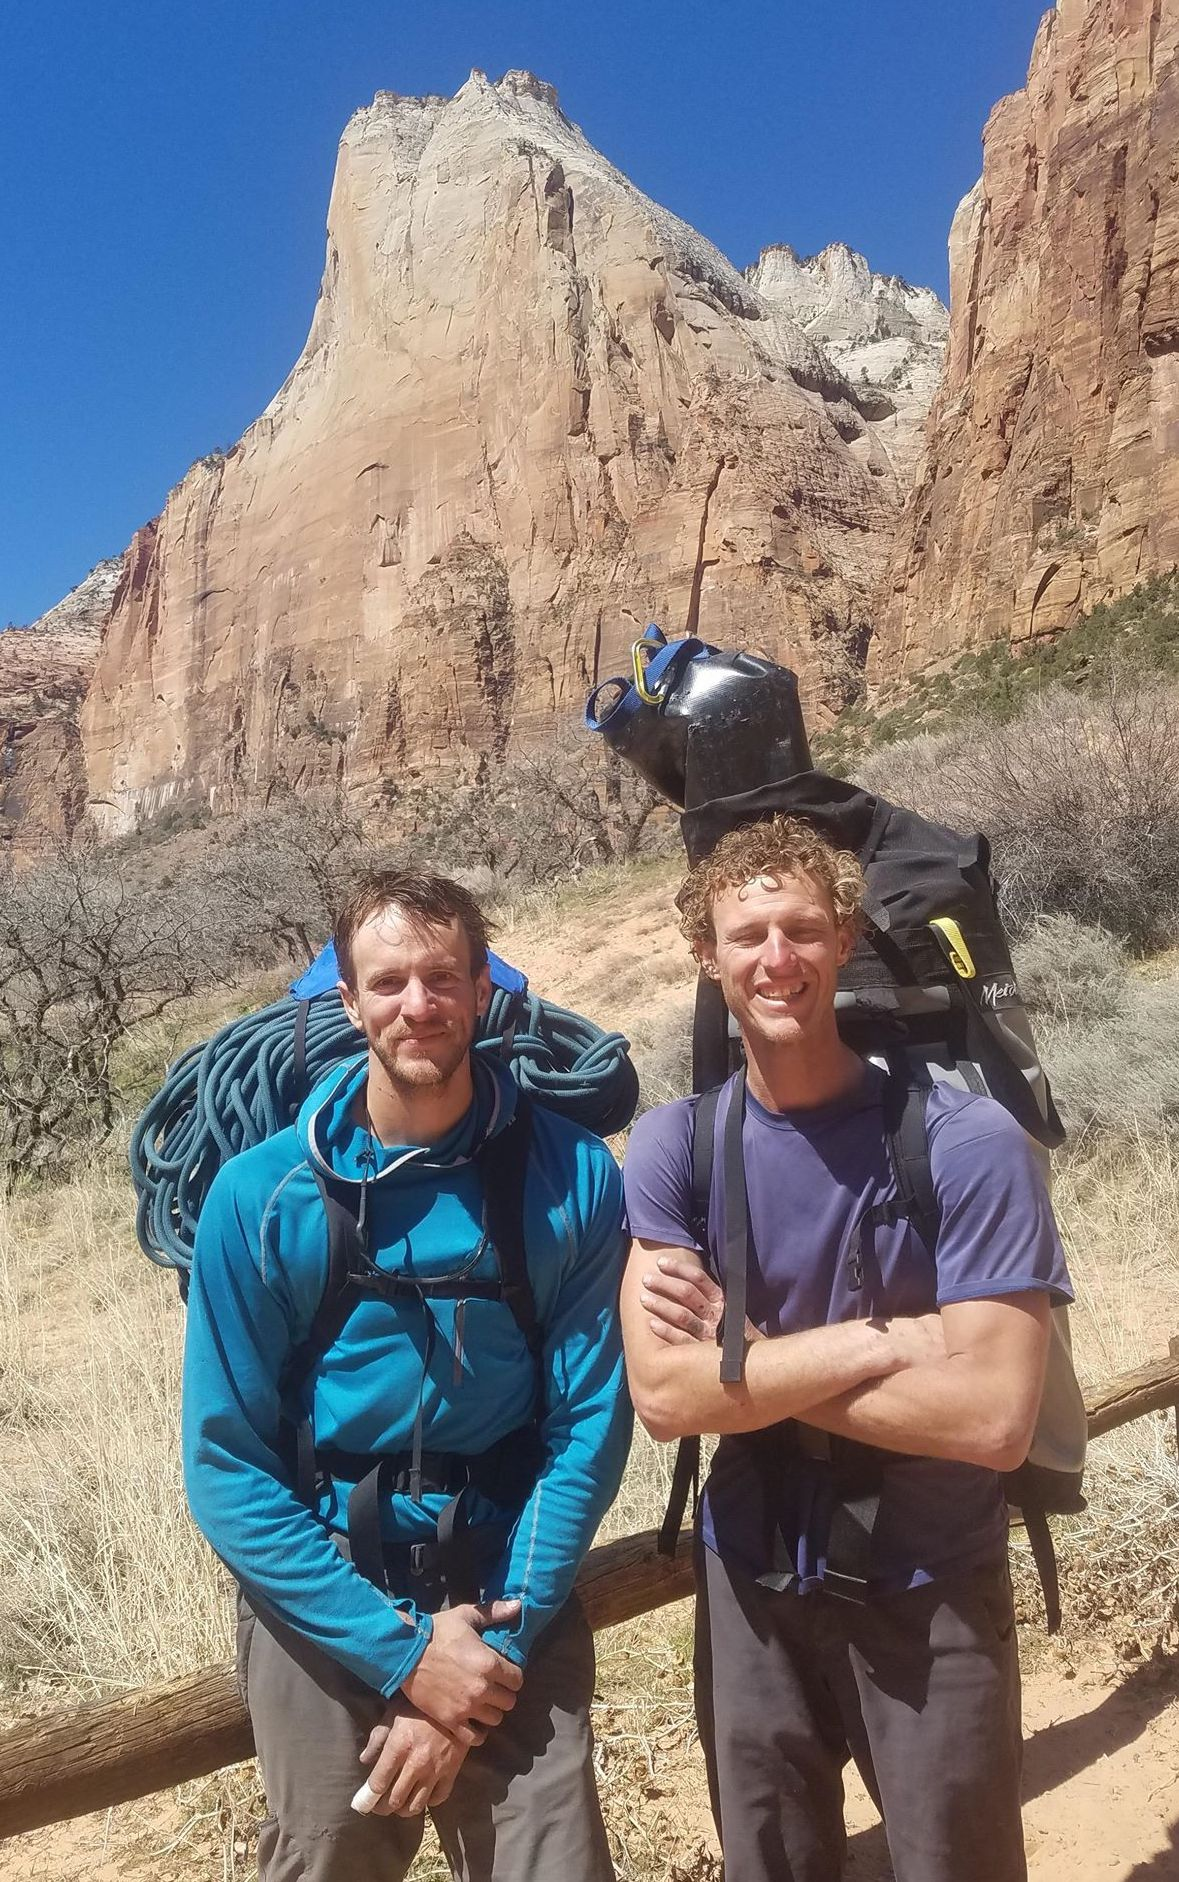 Brandon Adams, left, and Roger Putnam in Zion after the first ascent of Pangea (VI 5.10 A4) on Abraham (visible in the background), March 2018. [Photo] Roger Putnam collection